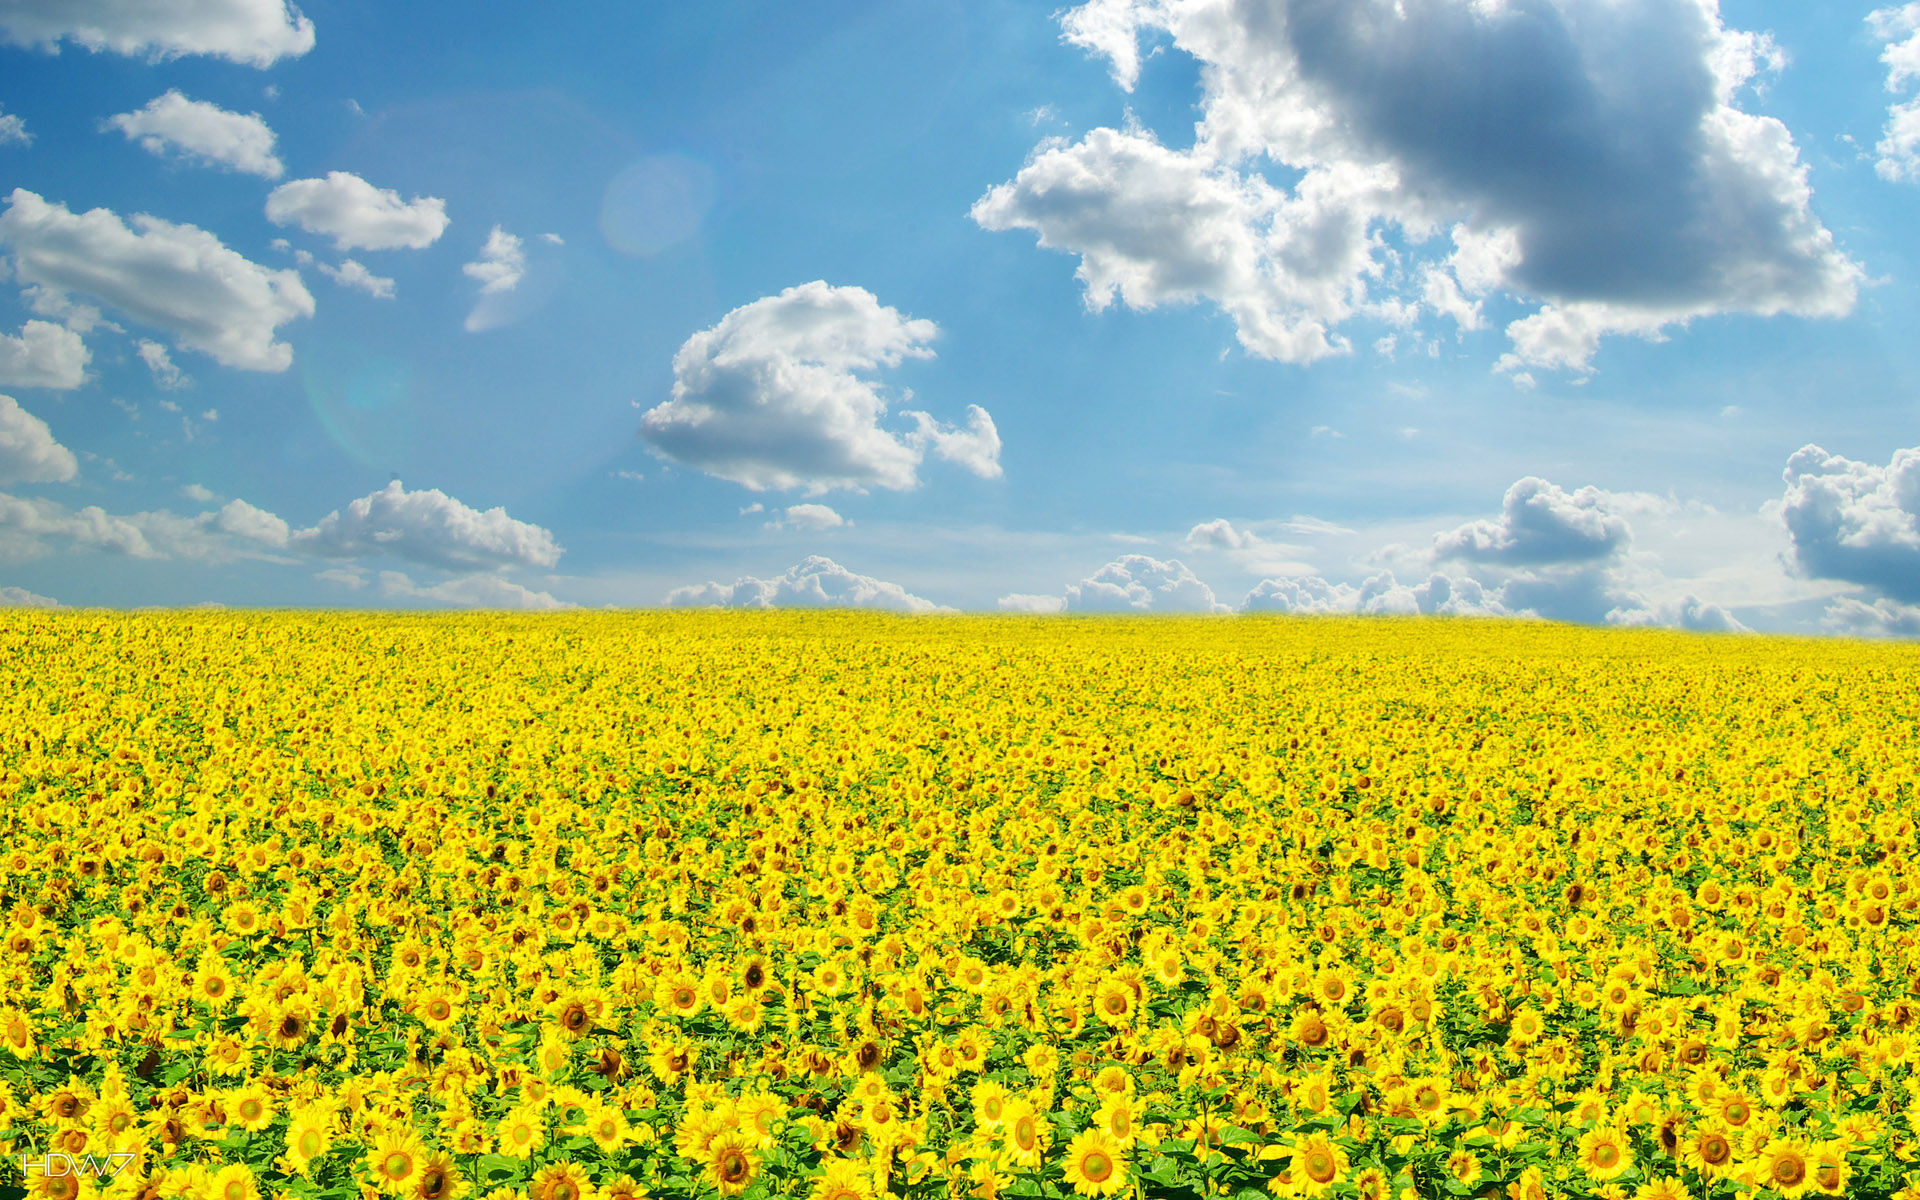 Bright sunny day yellow field sunflowers sky clouds nature hd wallpaper gallery 67 - Sunny name wallpaper ...